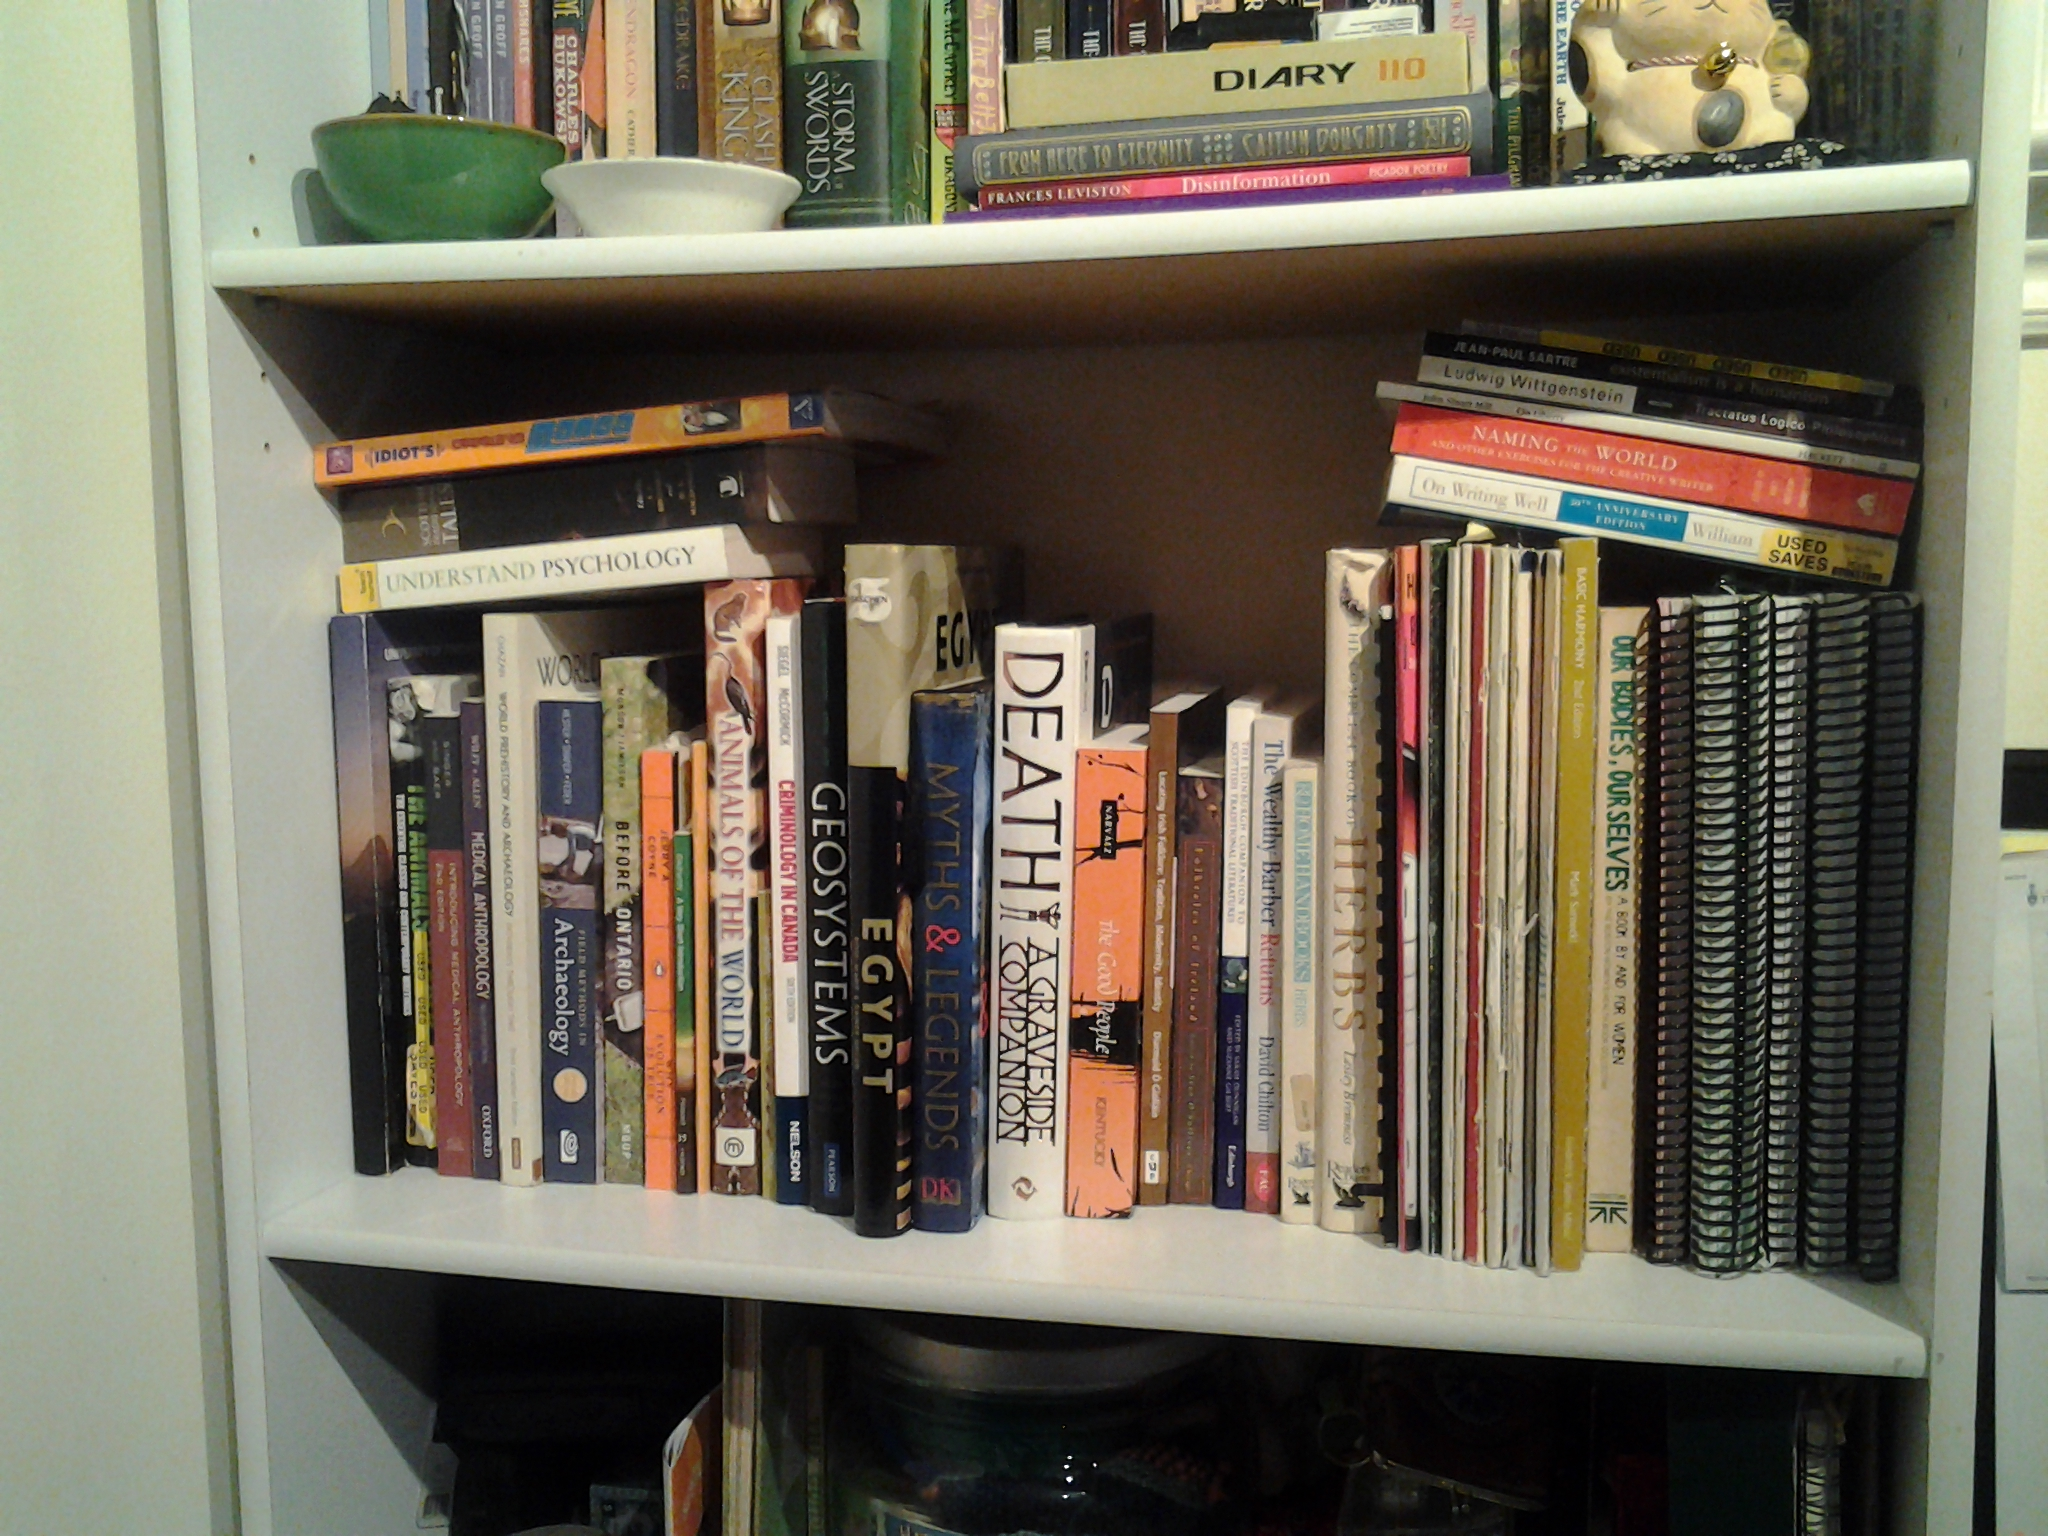 A photo of my bookshelf after the books have been placed back. Caption: returned to the shelf